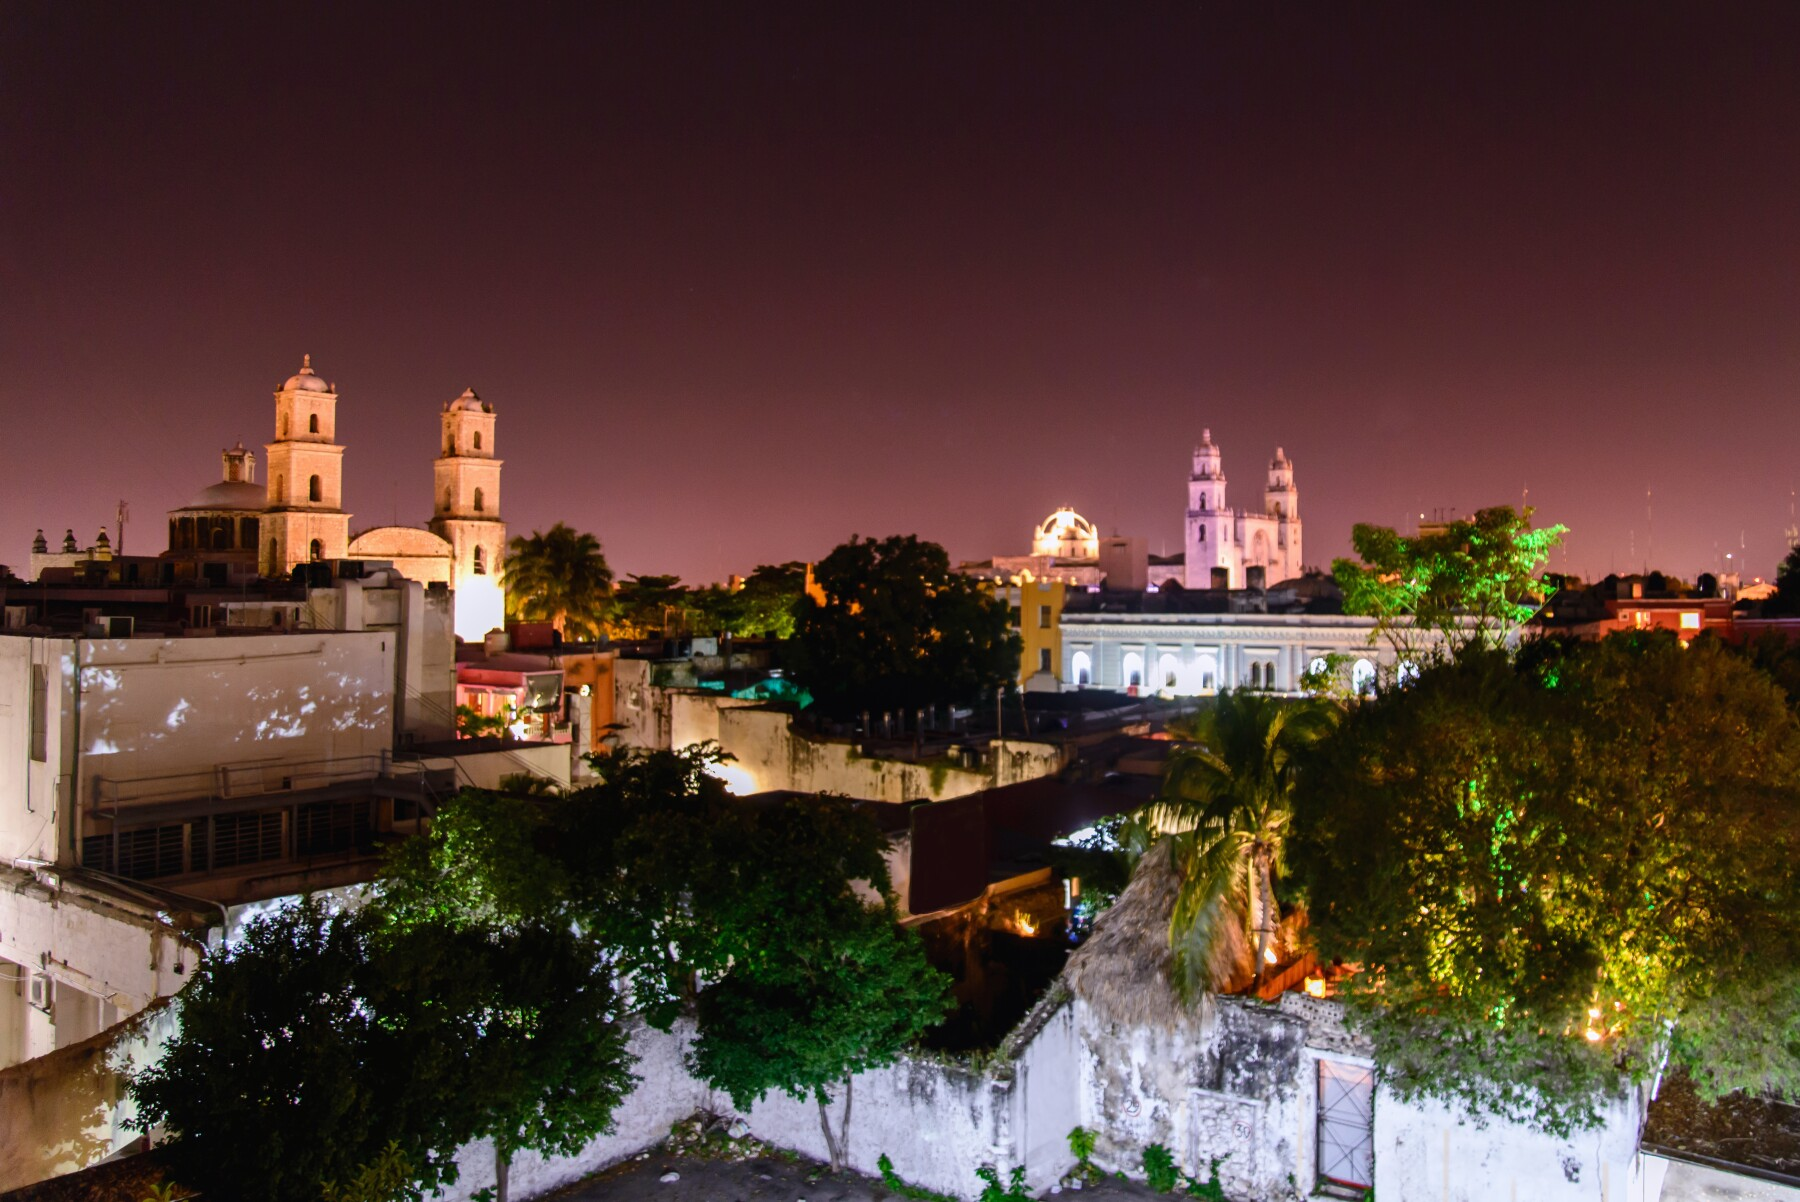 Mérida at night.